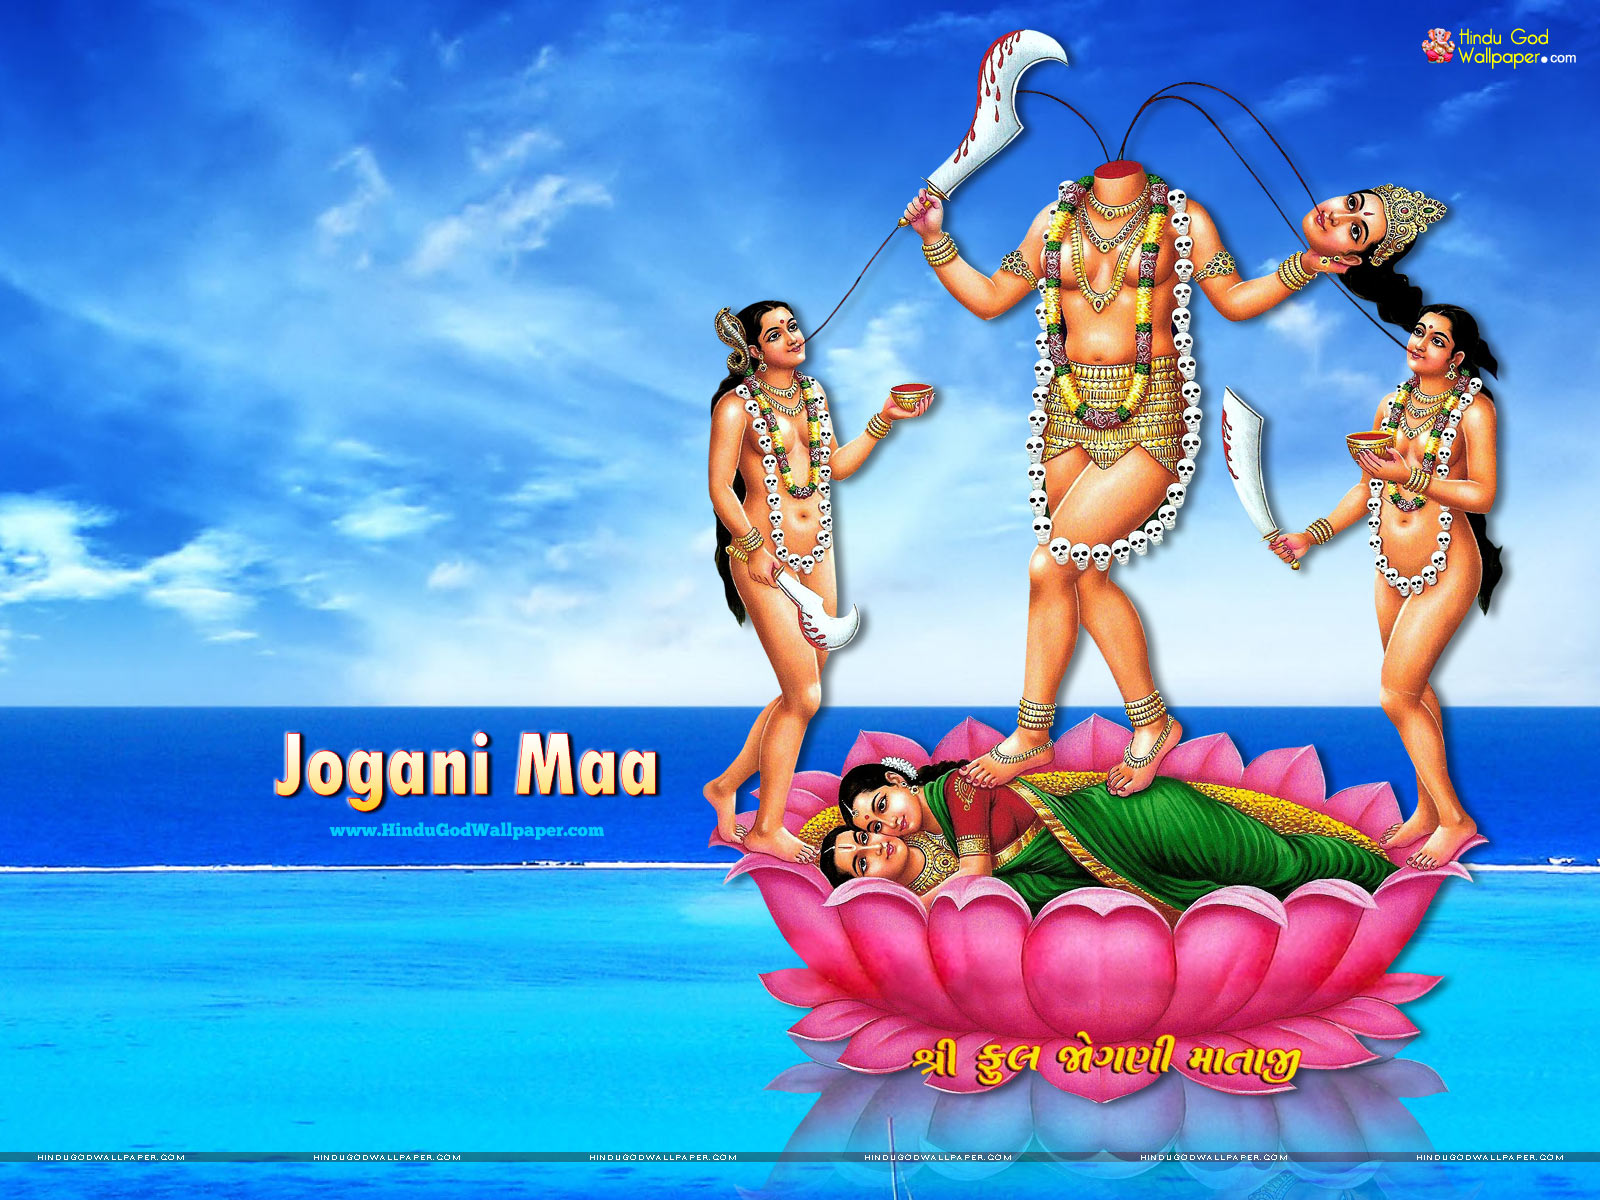 Photos Picture Jogani Maa Wallpapers And Photos Free Download